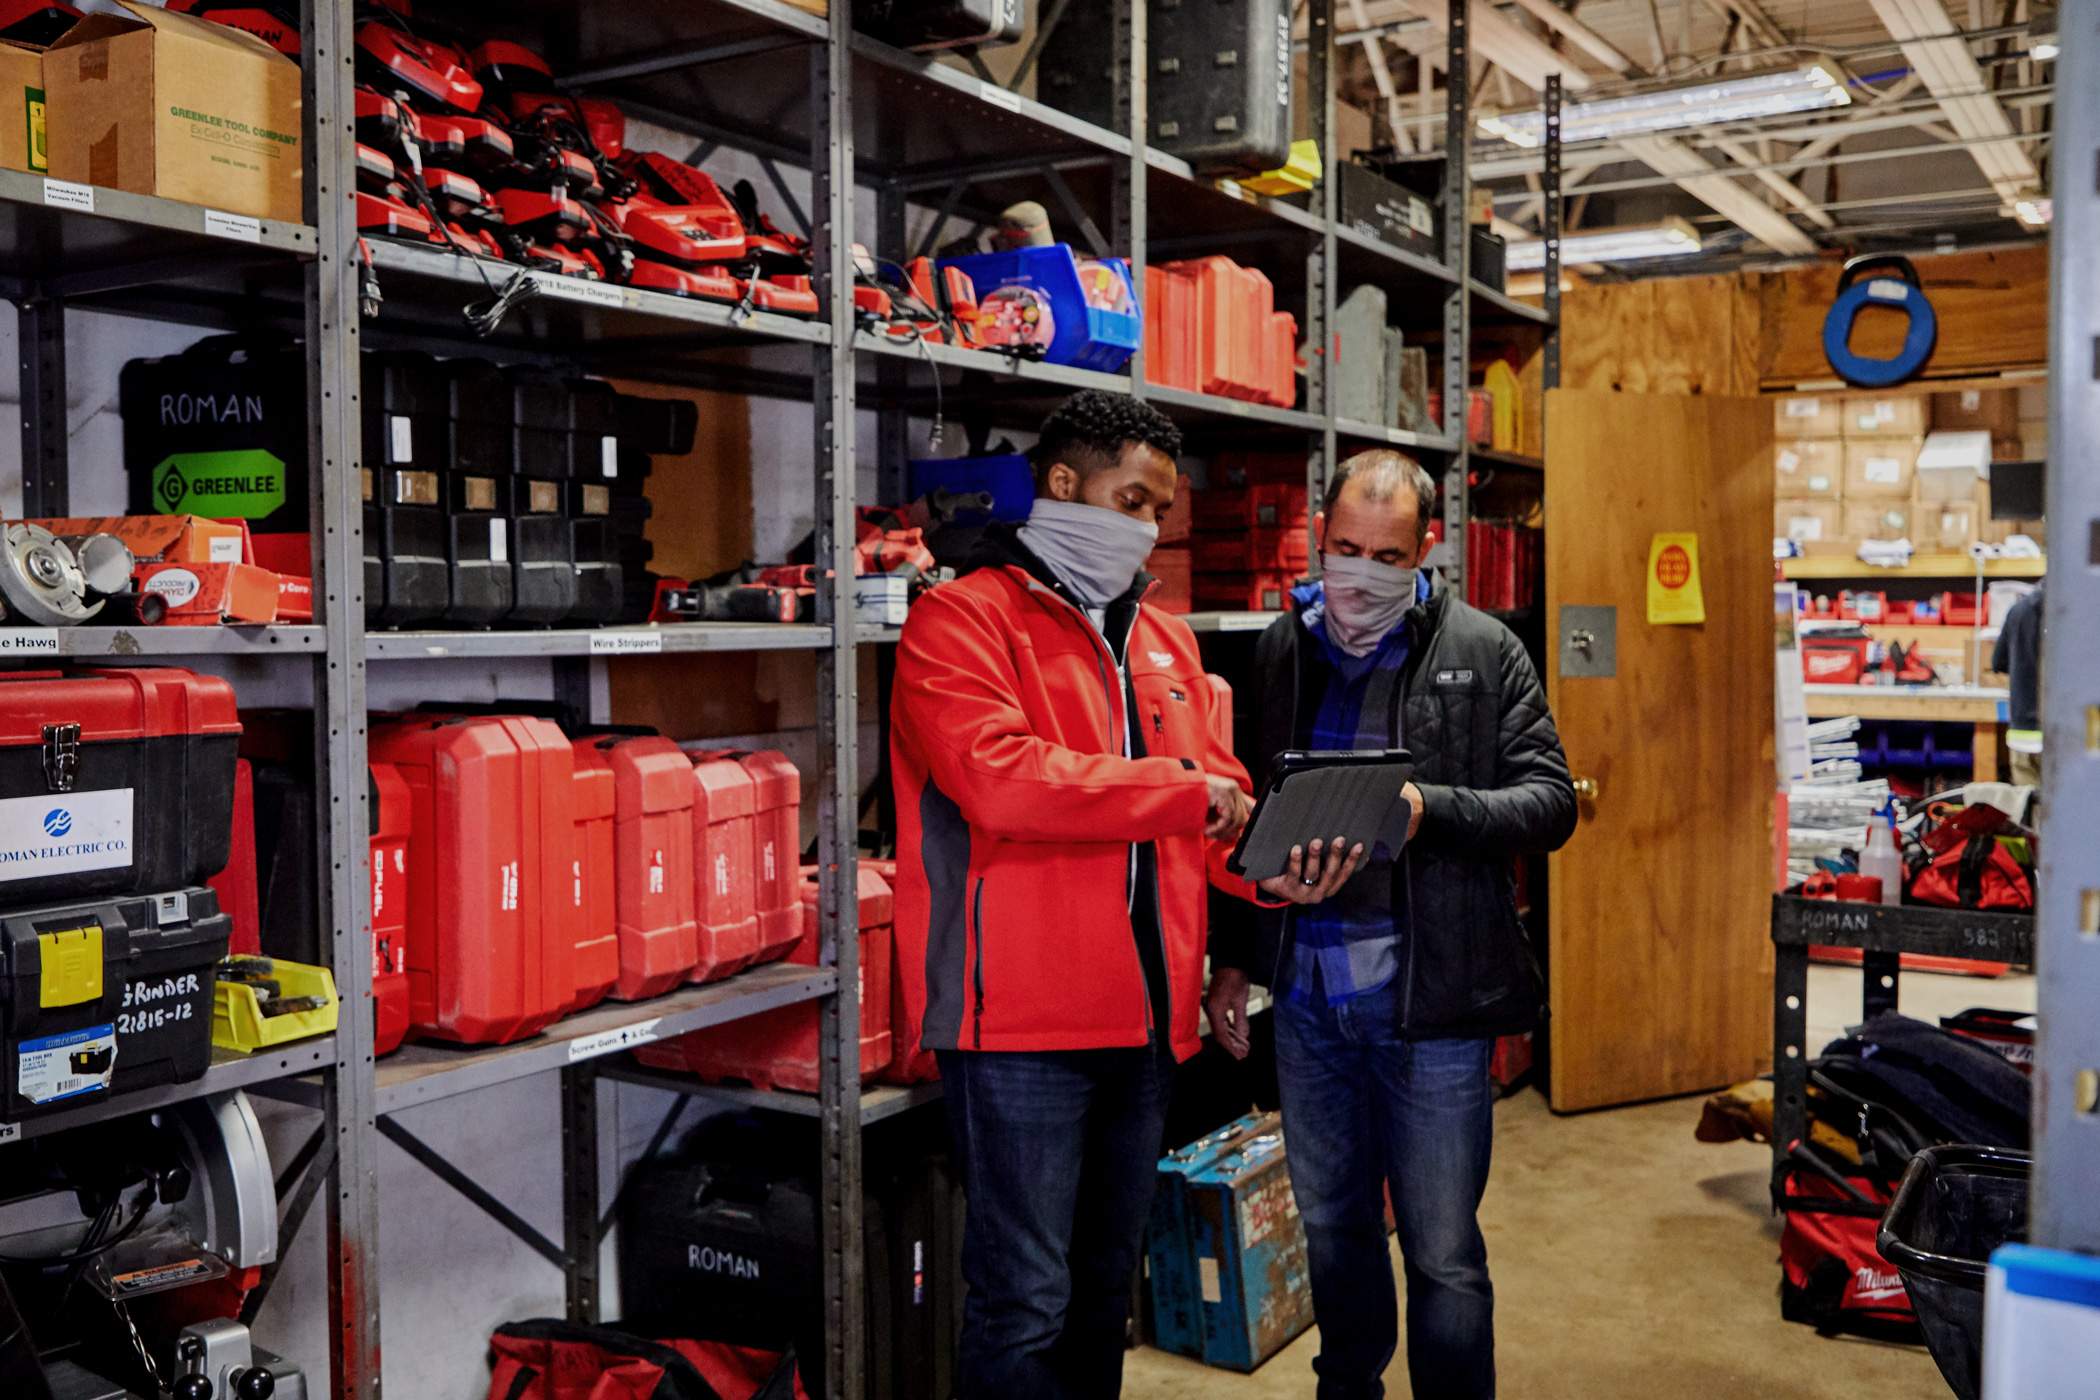 Two inventory managers consult over tablet device in tool crib